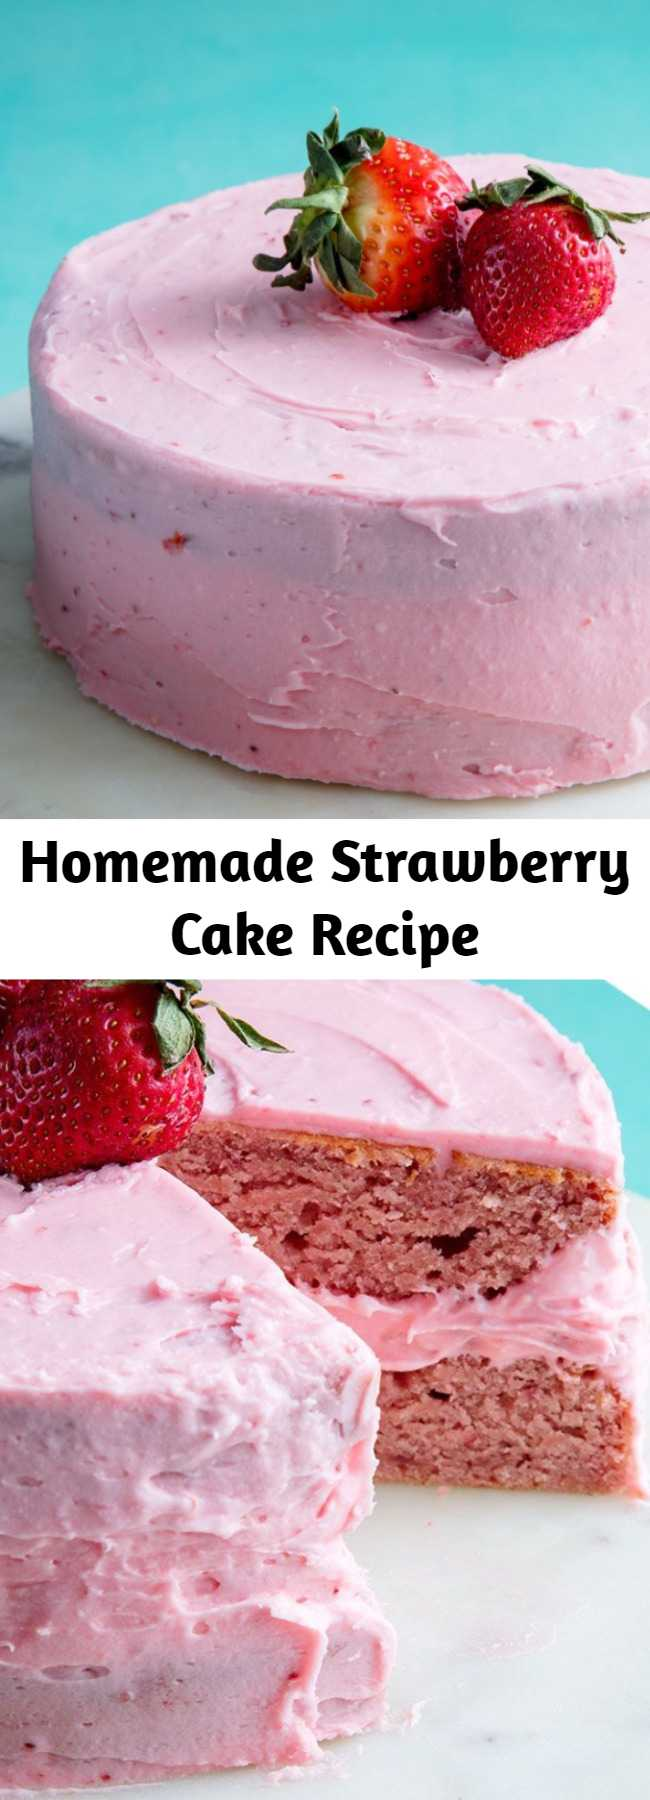 Homemade Strawberry Cake Recipe - Strawberry cake is sweet and tart and unmatched to other cakes. The cream cheese frosting is what really makes this cake. Making strawberry compote is easier than you'd think. All you're doing is cooking down the fresh berries with sugar and lemon juice. We used it in the batter and frosting to make sure that the cake has the best strawberry flavor possible. The compote will make a little more than you need, but you can use leftover just as you would jam!